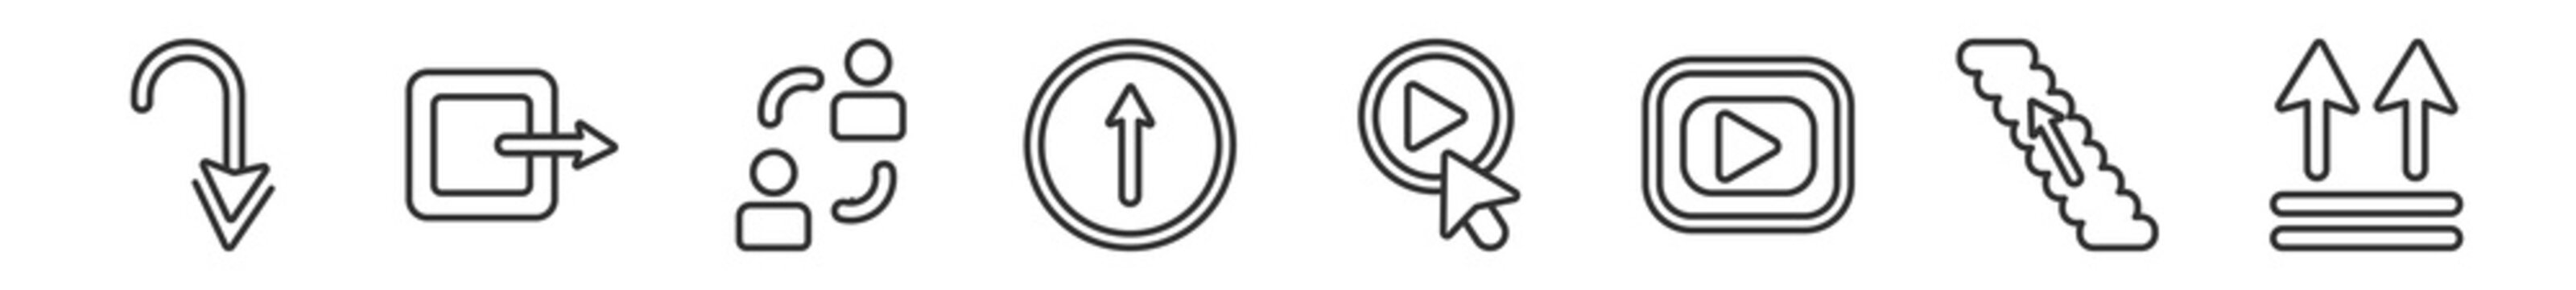 outline set of web navigation line icons. linear vector icons such as cursor, birghtness, express, head, empty, spider web. vector illustration.